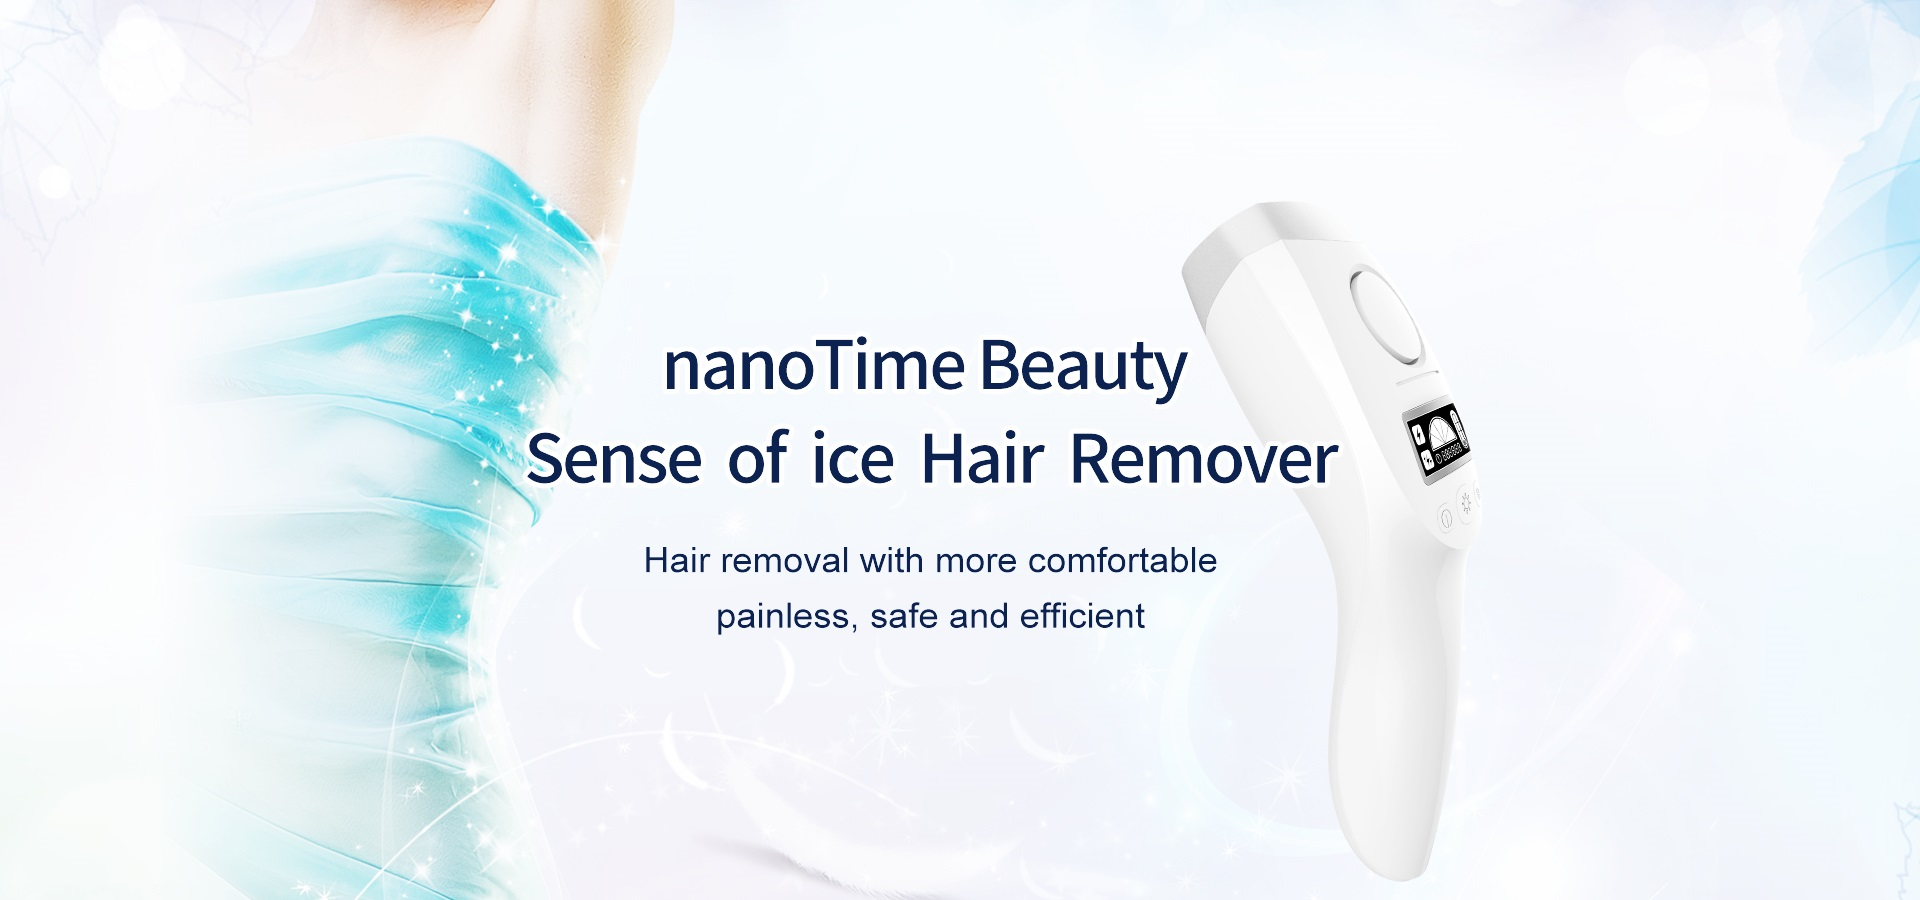 nanotime beauty IPL hair remove devies